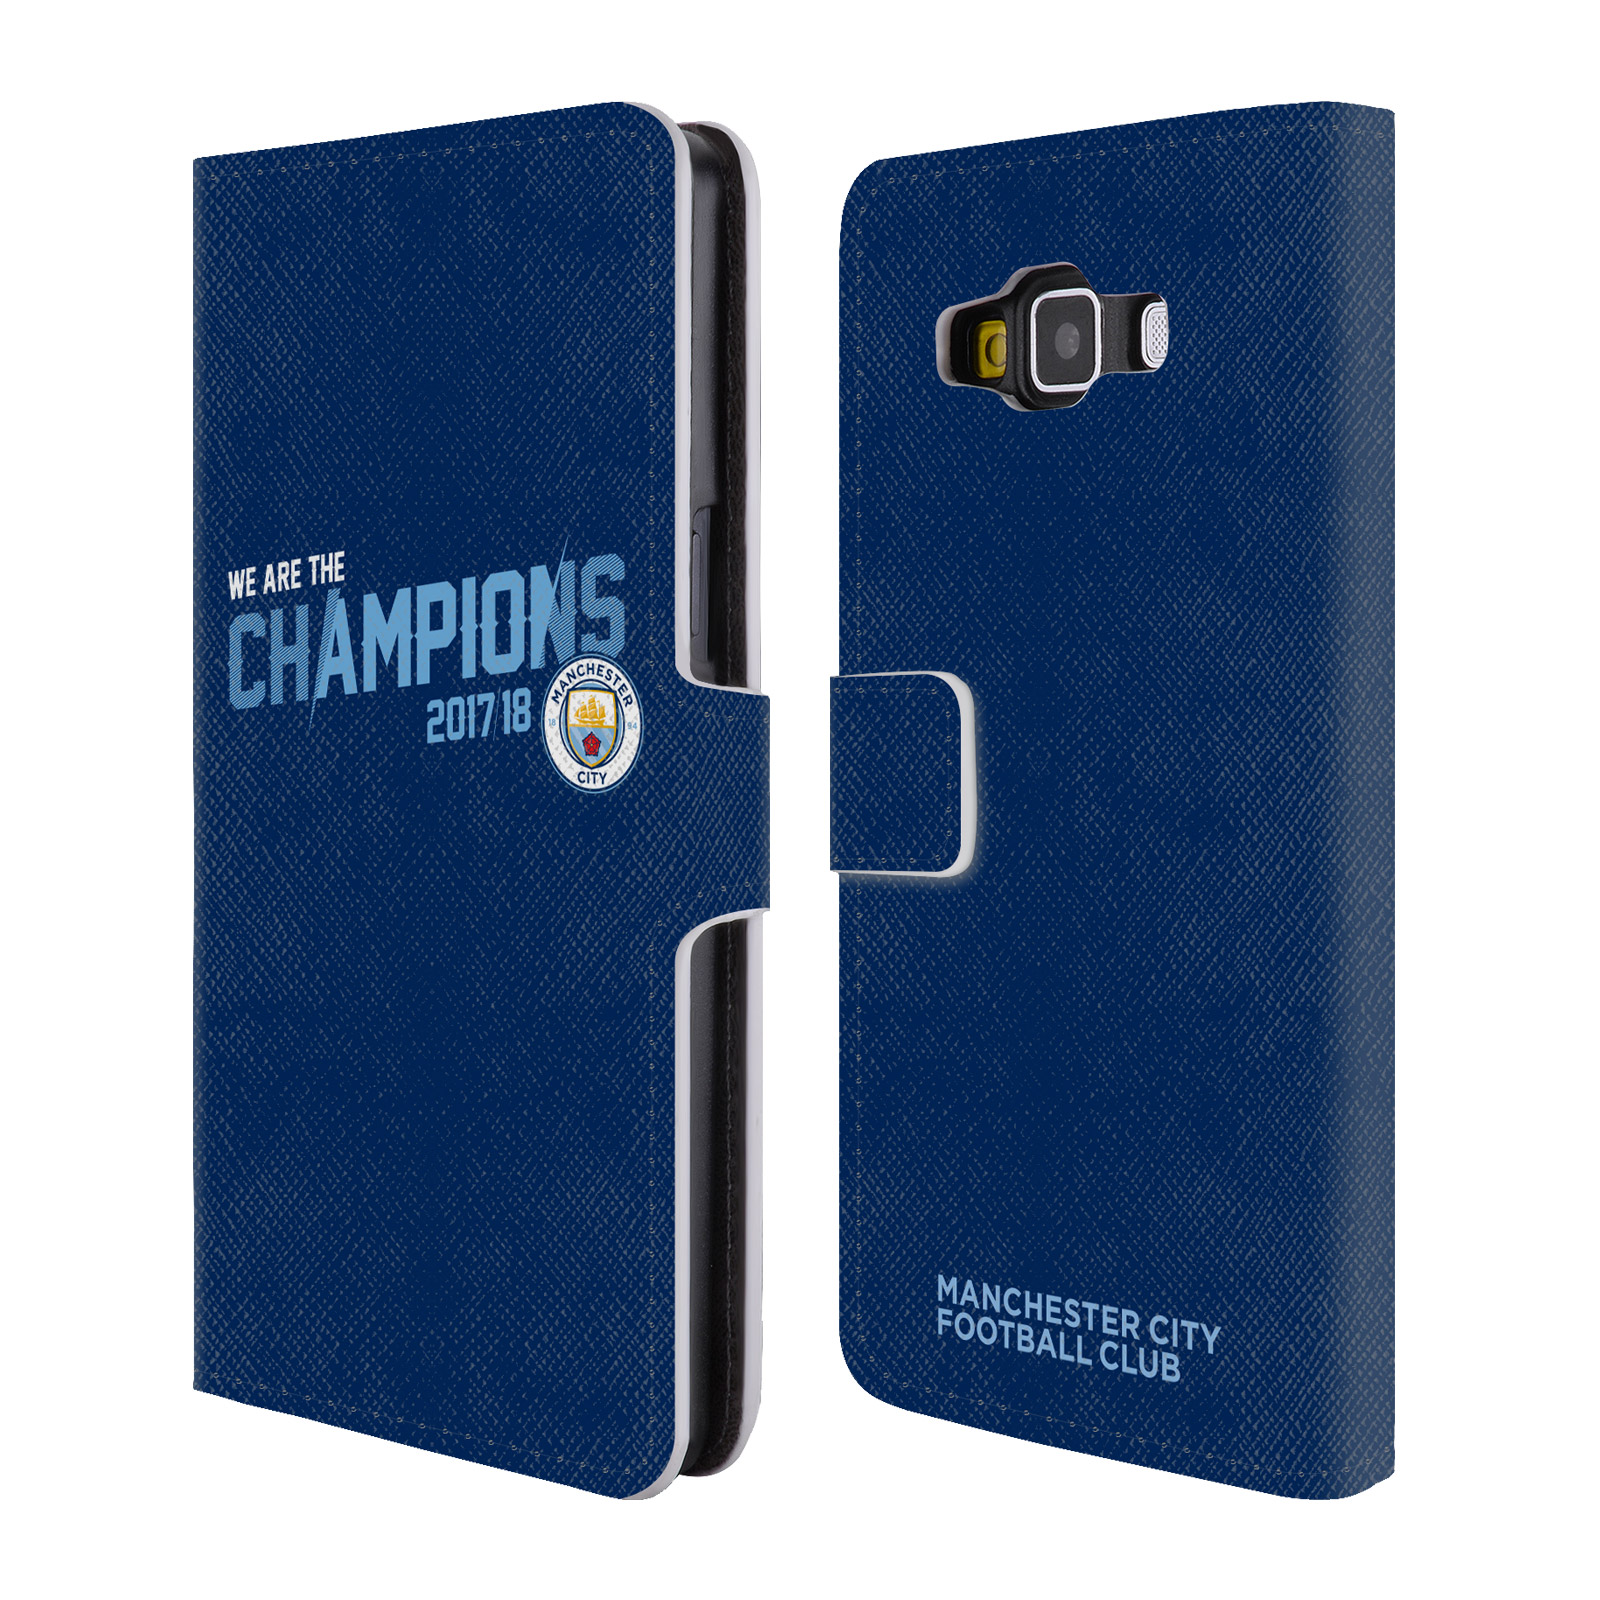 MAN-CITY-FC-2017-18-CHAMPIONS-LEATHER-BOOK-WALLET-CASE-FOR-SAMSUNG-PHONES-2